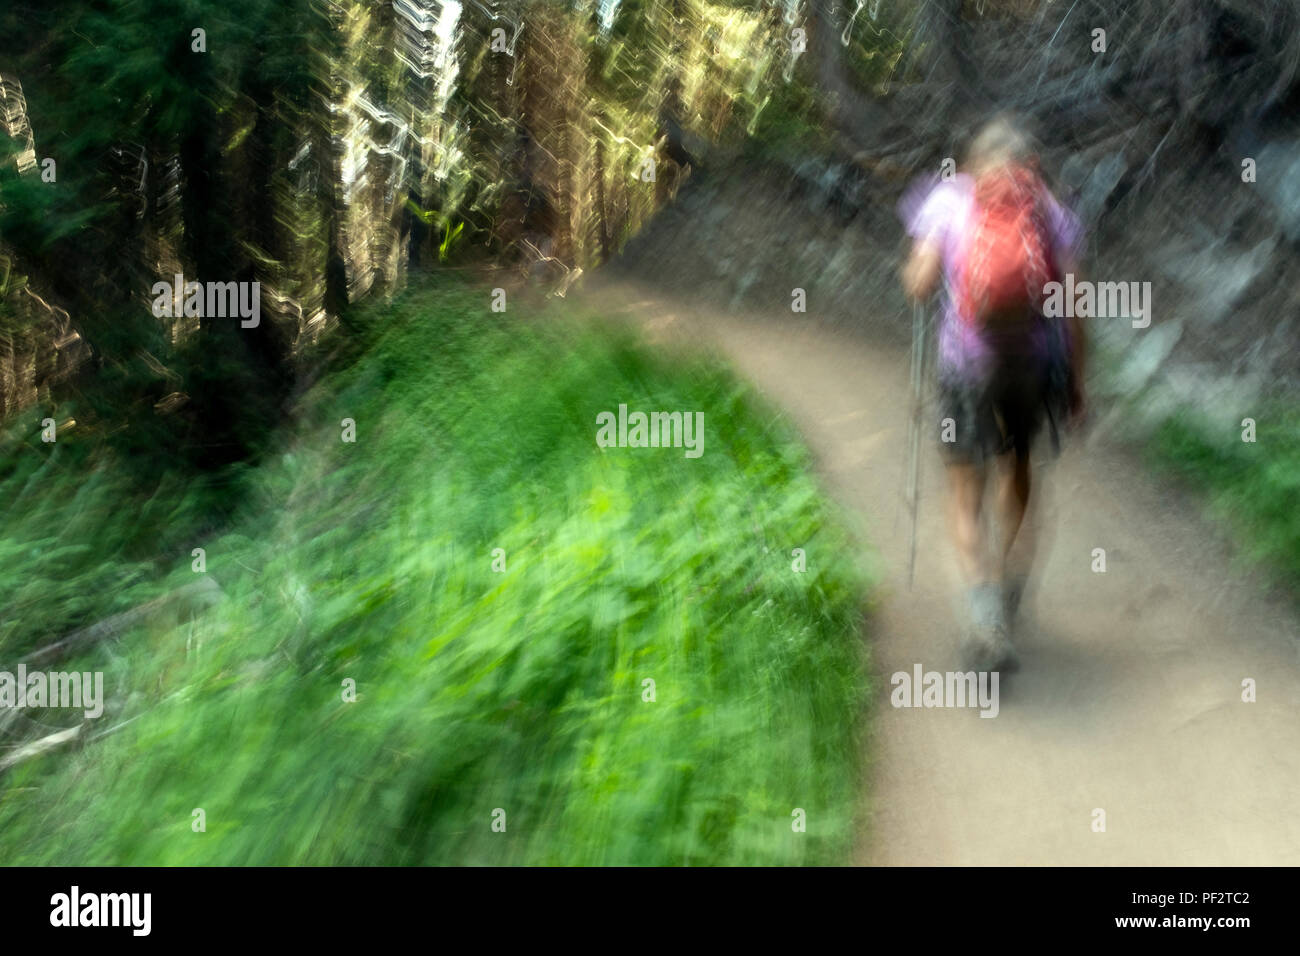 WA14749-00...WASHINGTON - Hiker on the Glacier Basin Trail near the White River Campground in Mount Rainier National Park. - Stock Image